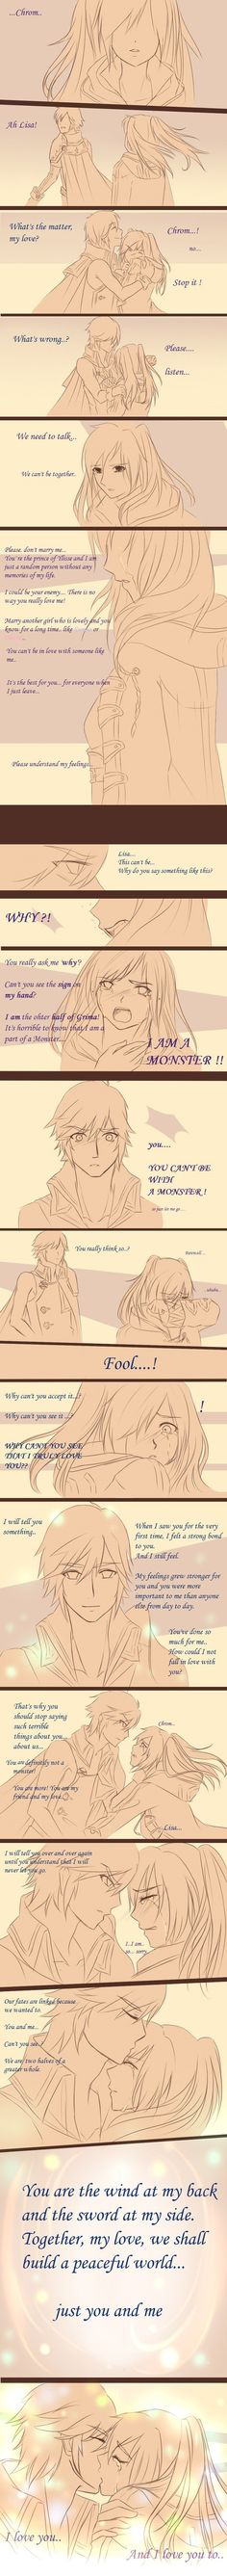 Our fates are linked because we wanted to by OwlLisa on deviantART